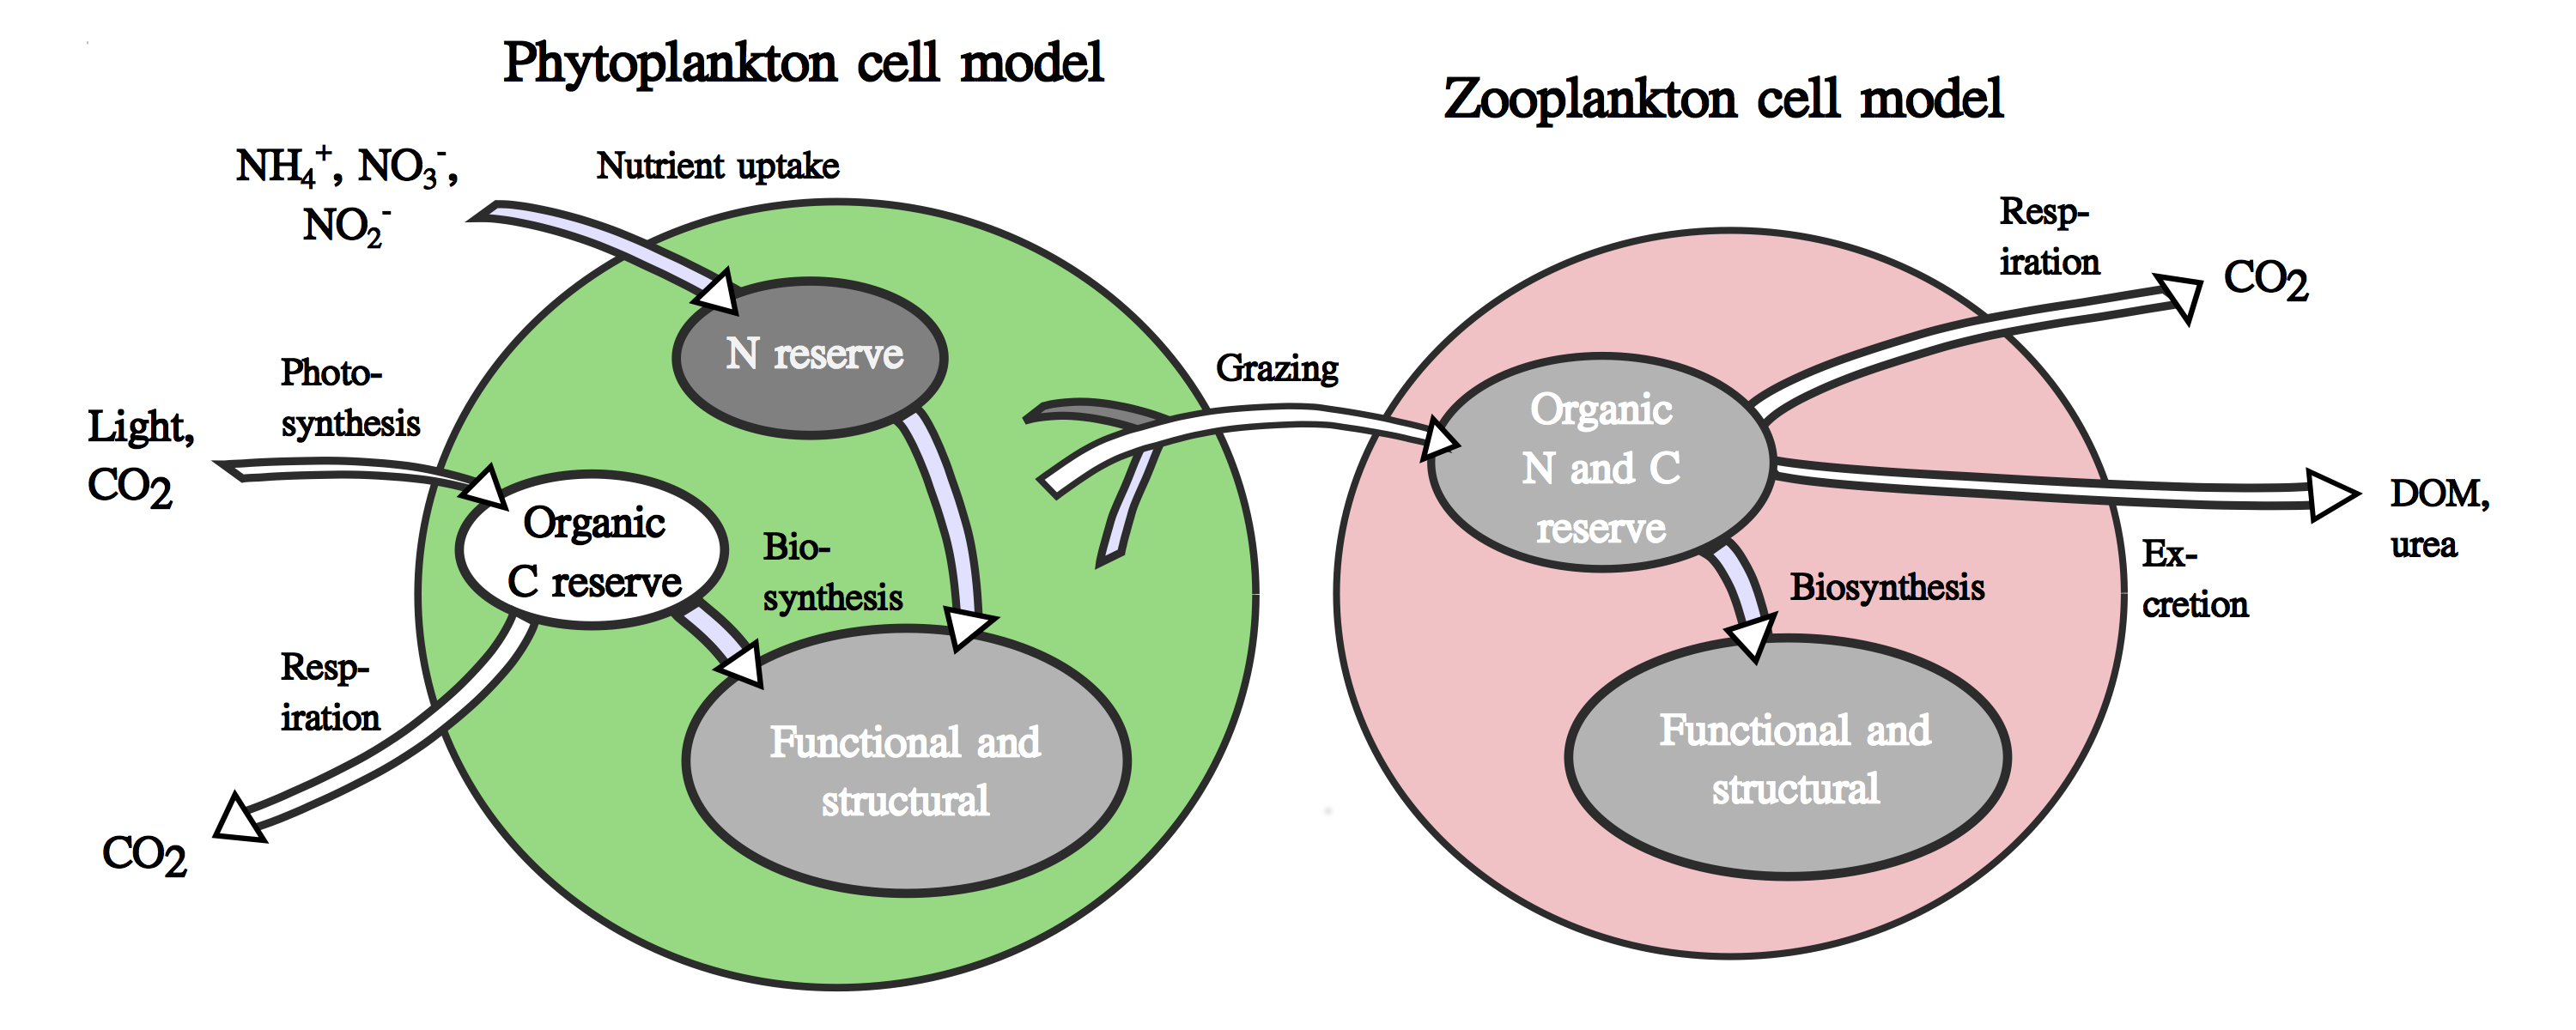 Schematic representation of a phytoplankton cell model and a zooplankton model - Image courtesy: D. Talmy